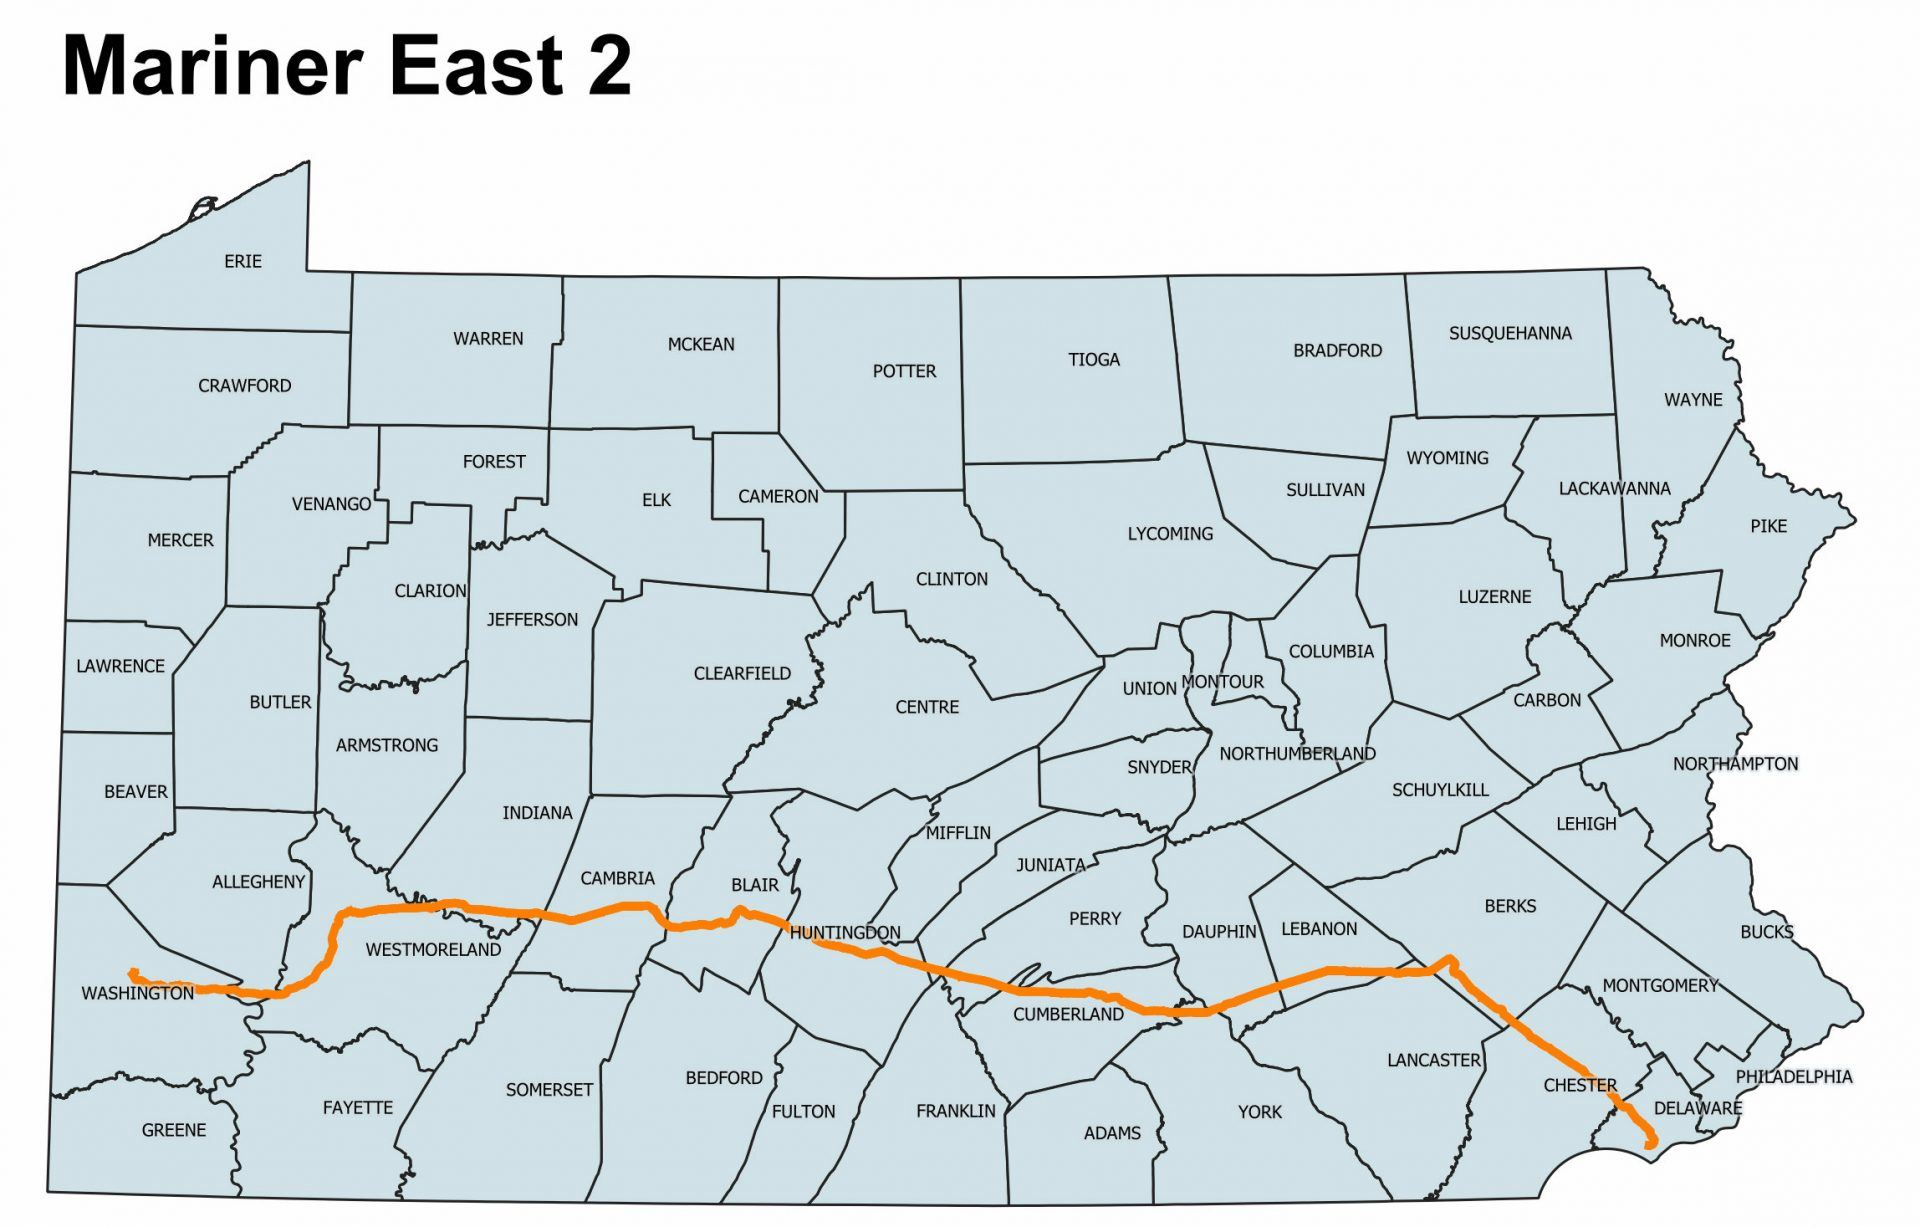 Mariner East Pipeline Map